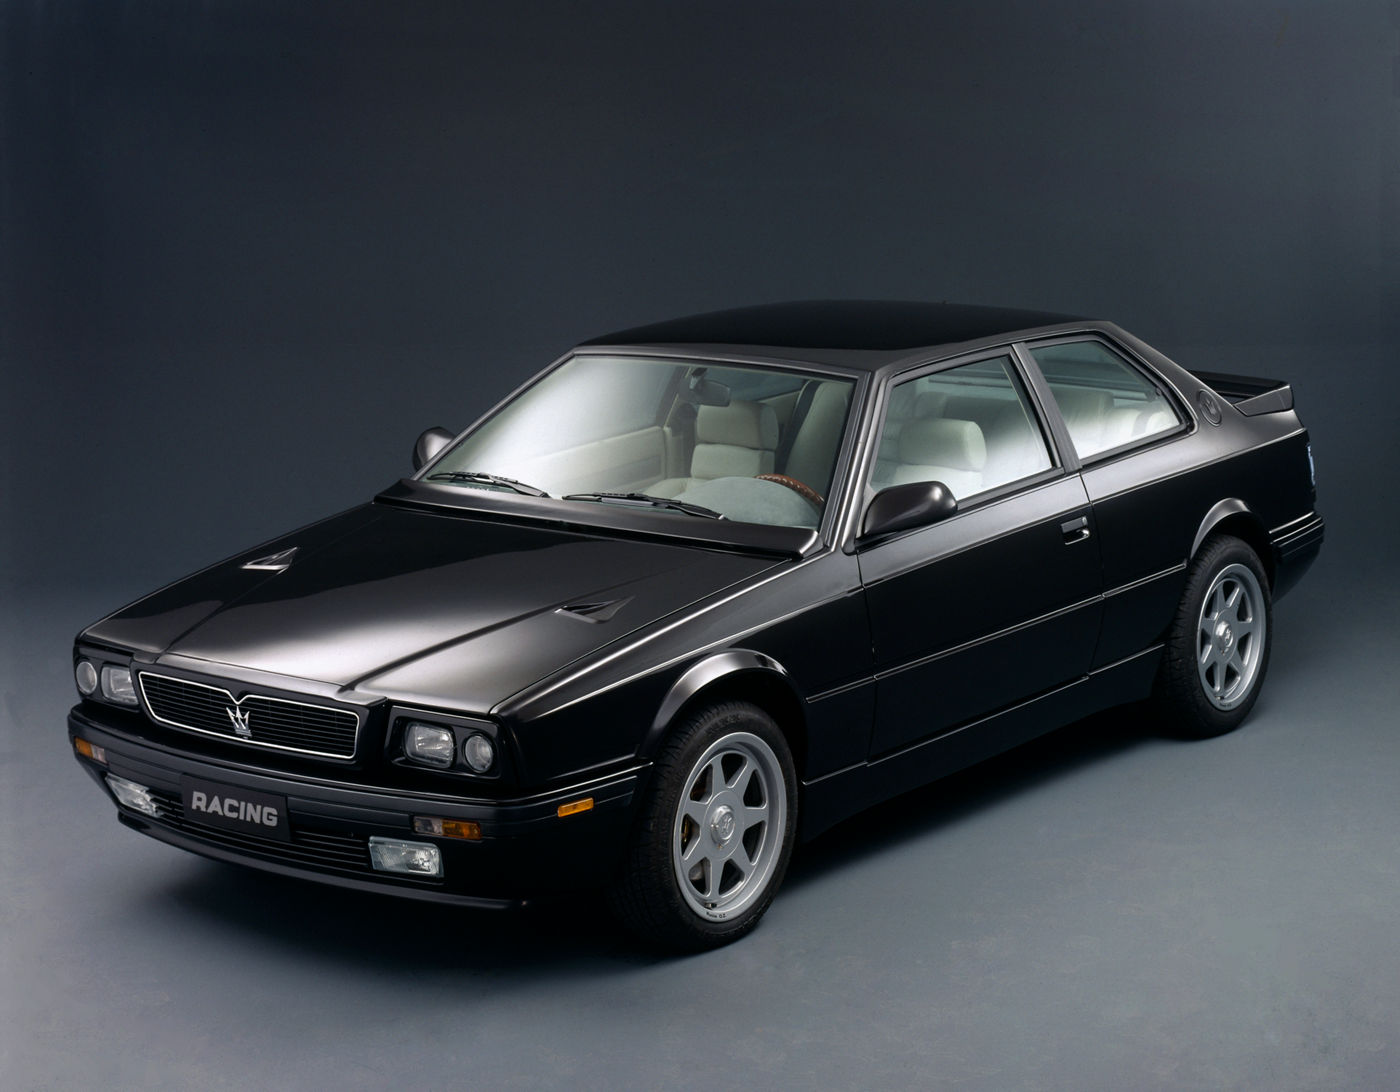 1990 Maserati Racing - exterior of the classic sports car model in black